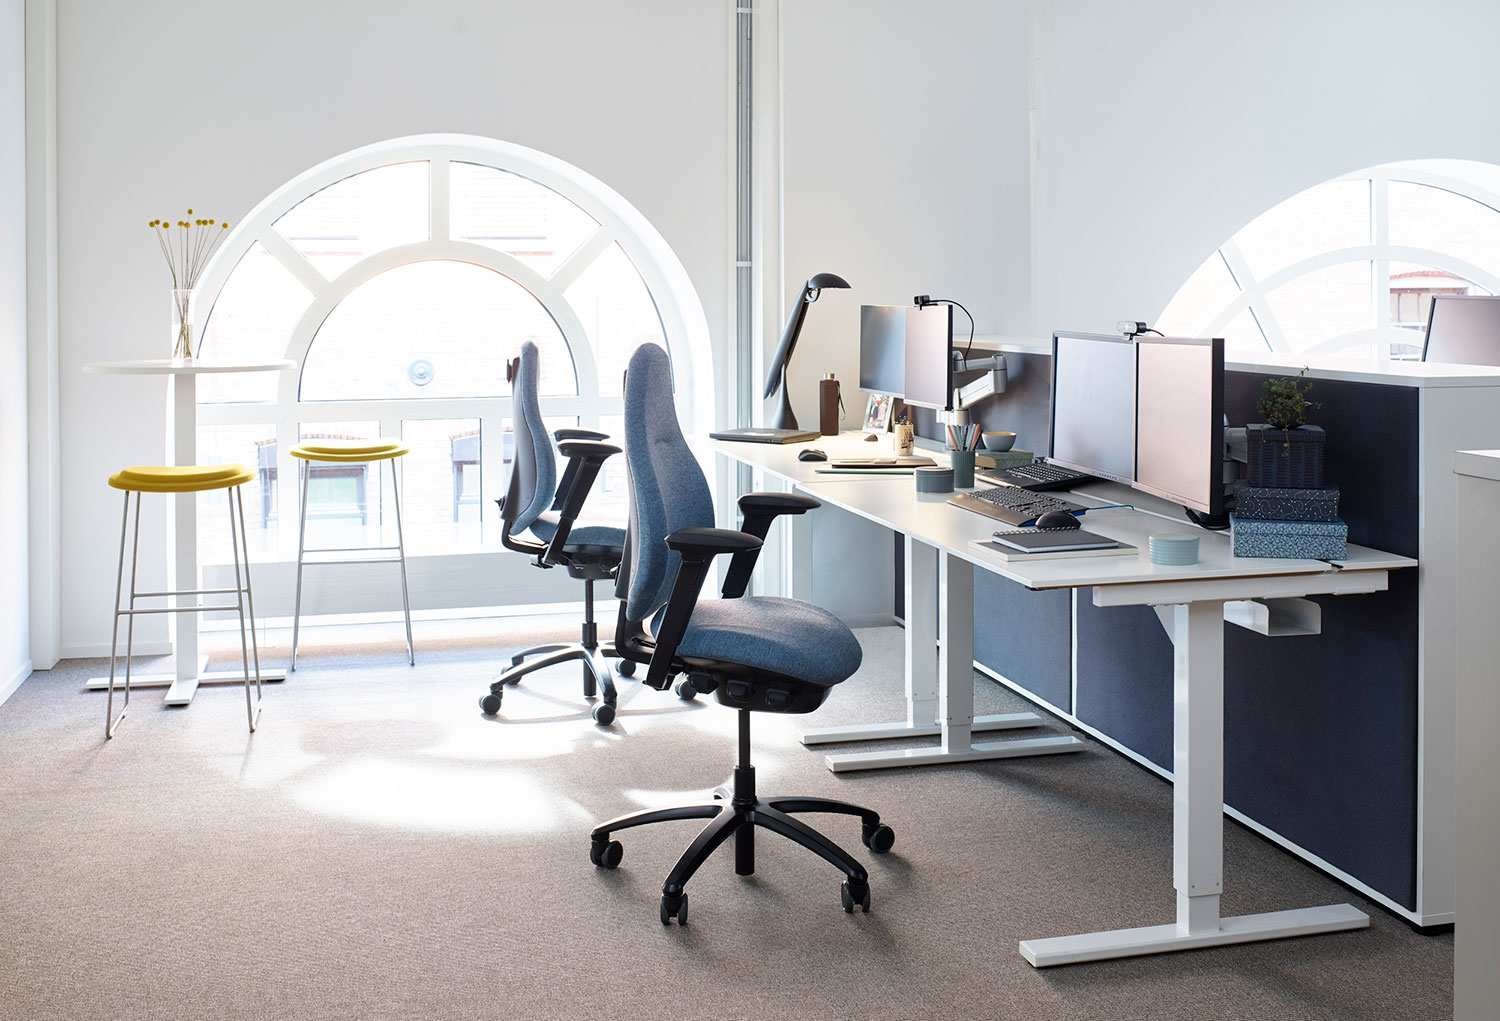 RH mereo chairs at office desk